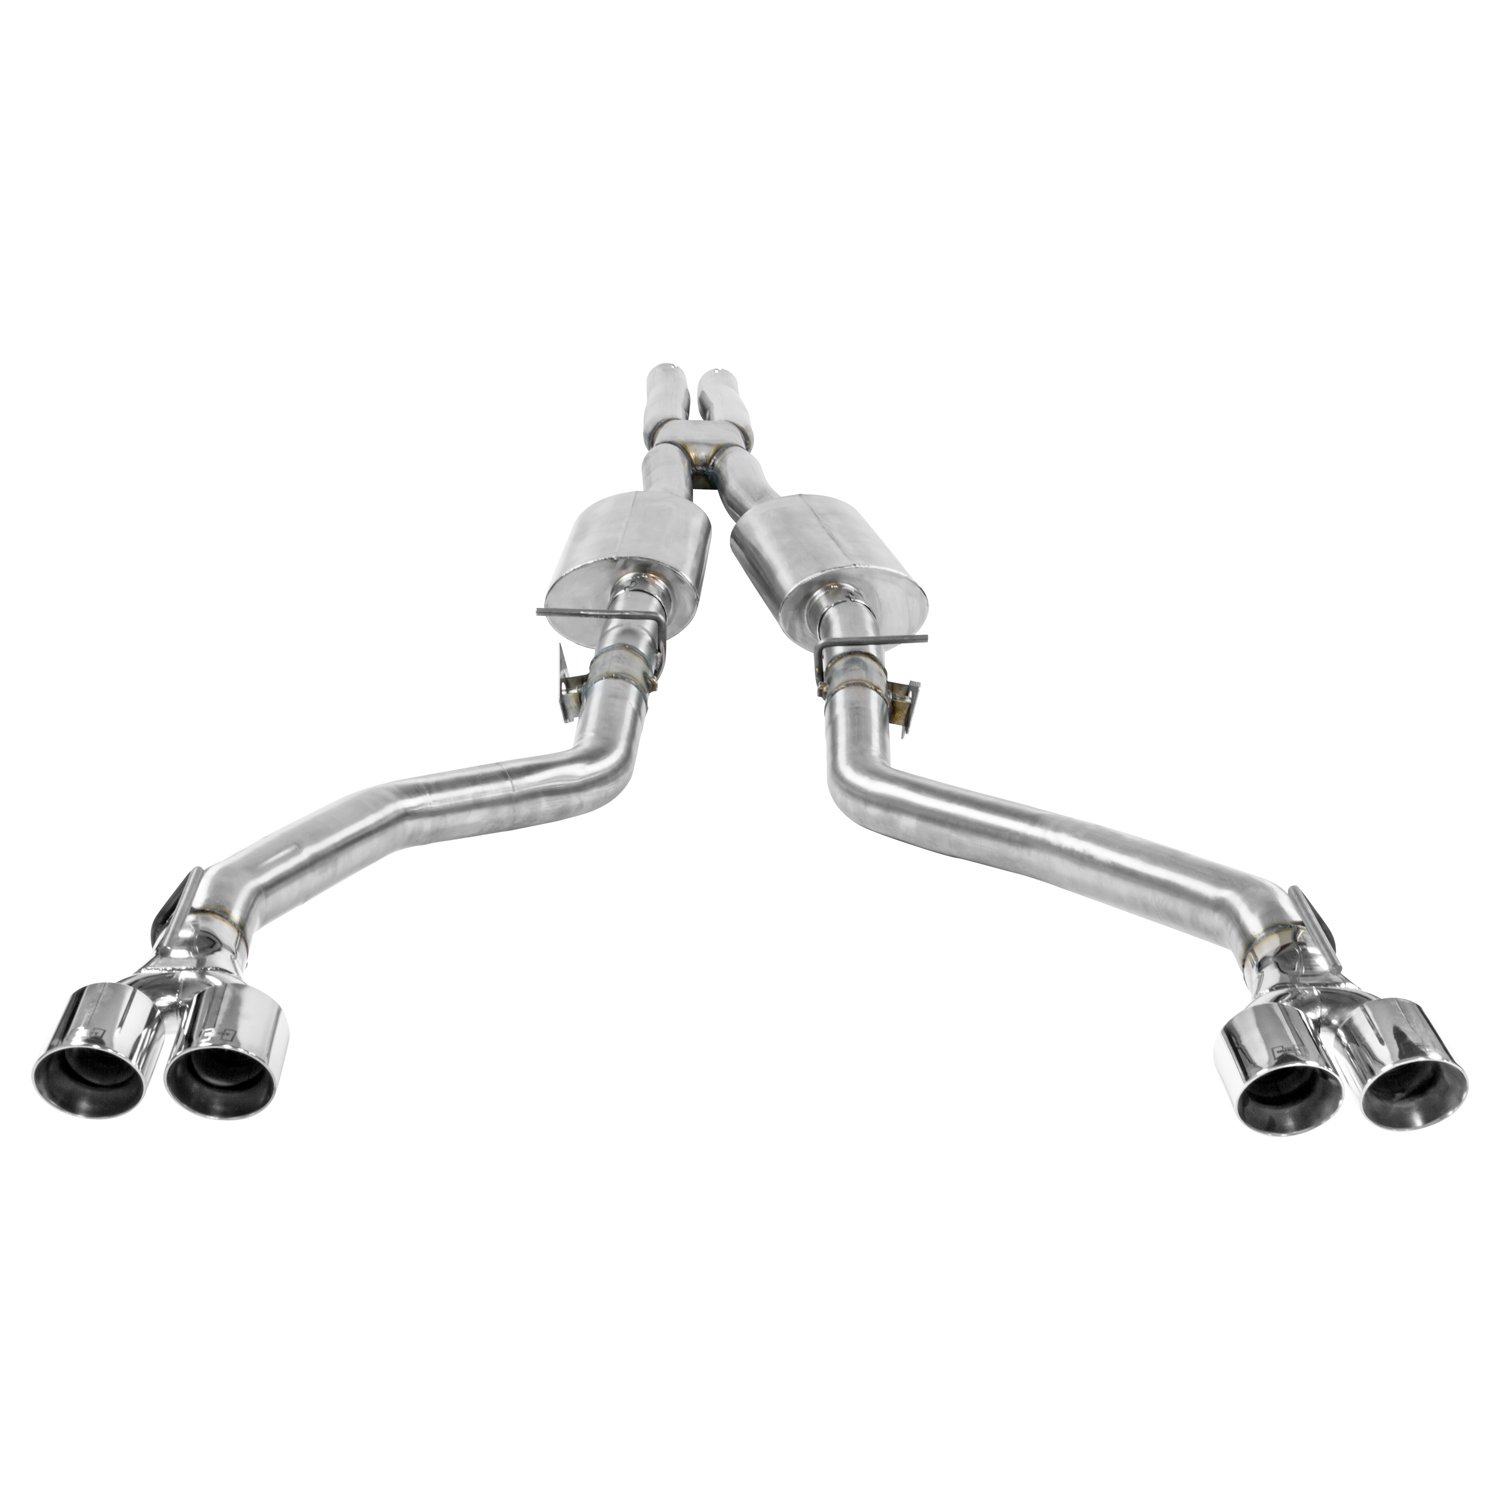 Hurst Hurst Elite Series Cat Back Exhaust System